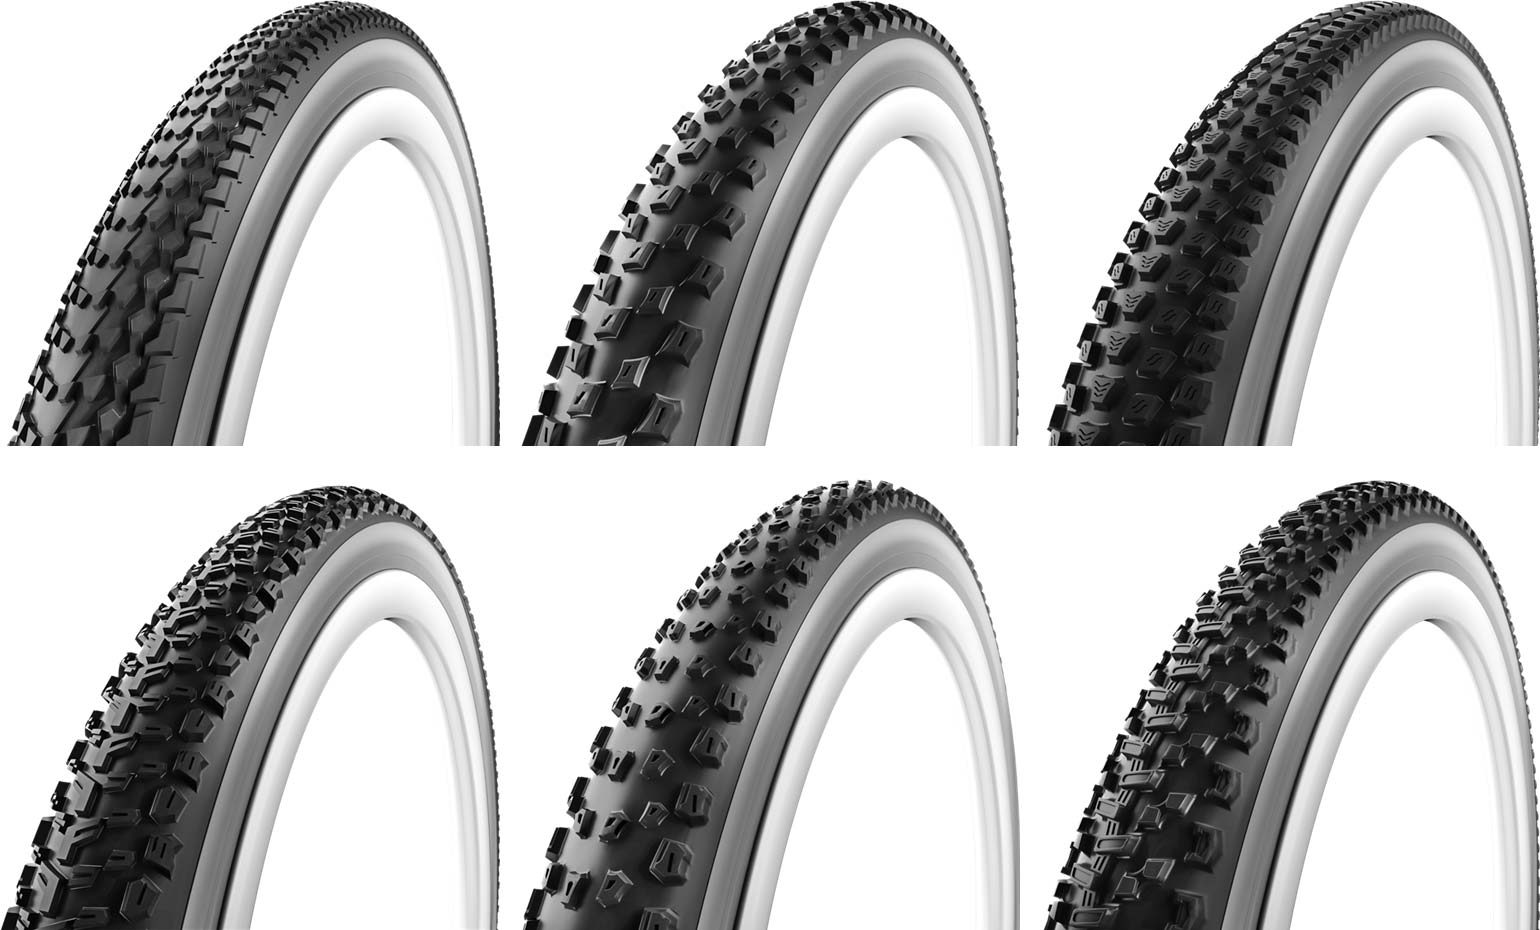 Vittoria cross country mountain bike tires have a tread pattern for dry wet hardpack and loam to suit any course